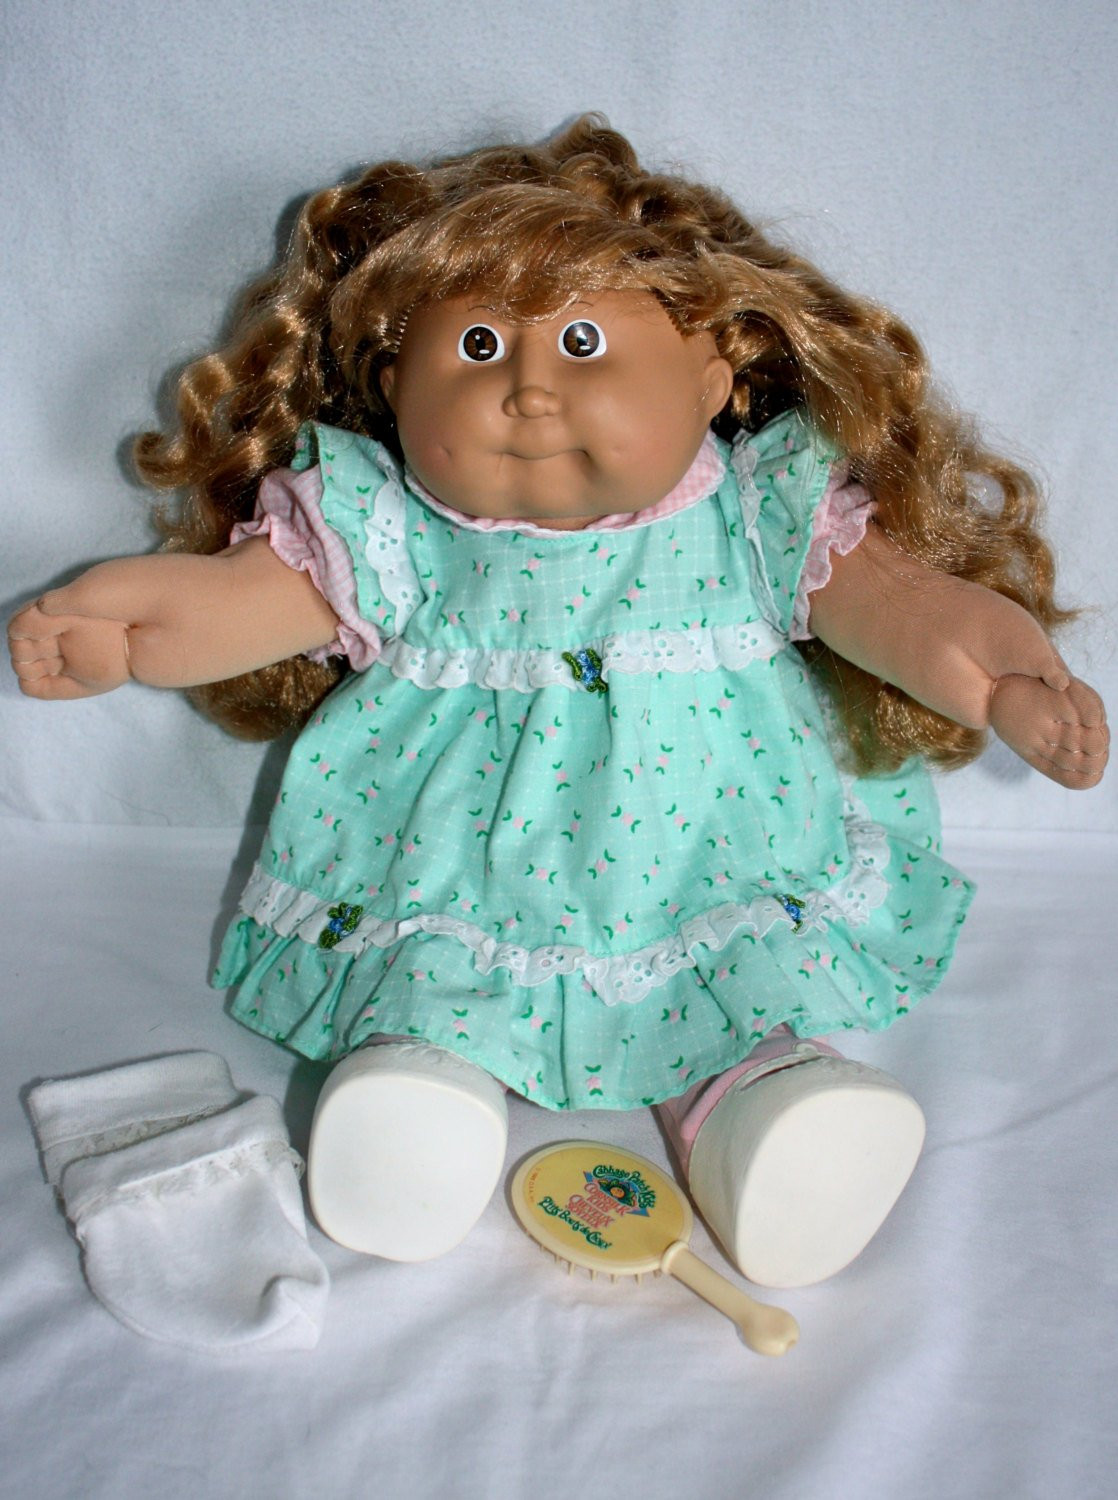 Cabbage Patch Kids Value Elegant Vintage 1980s original Cabbage Patch Doll with Real Blond Of New 41 Pics Cabbage Patch Kids Value